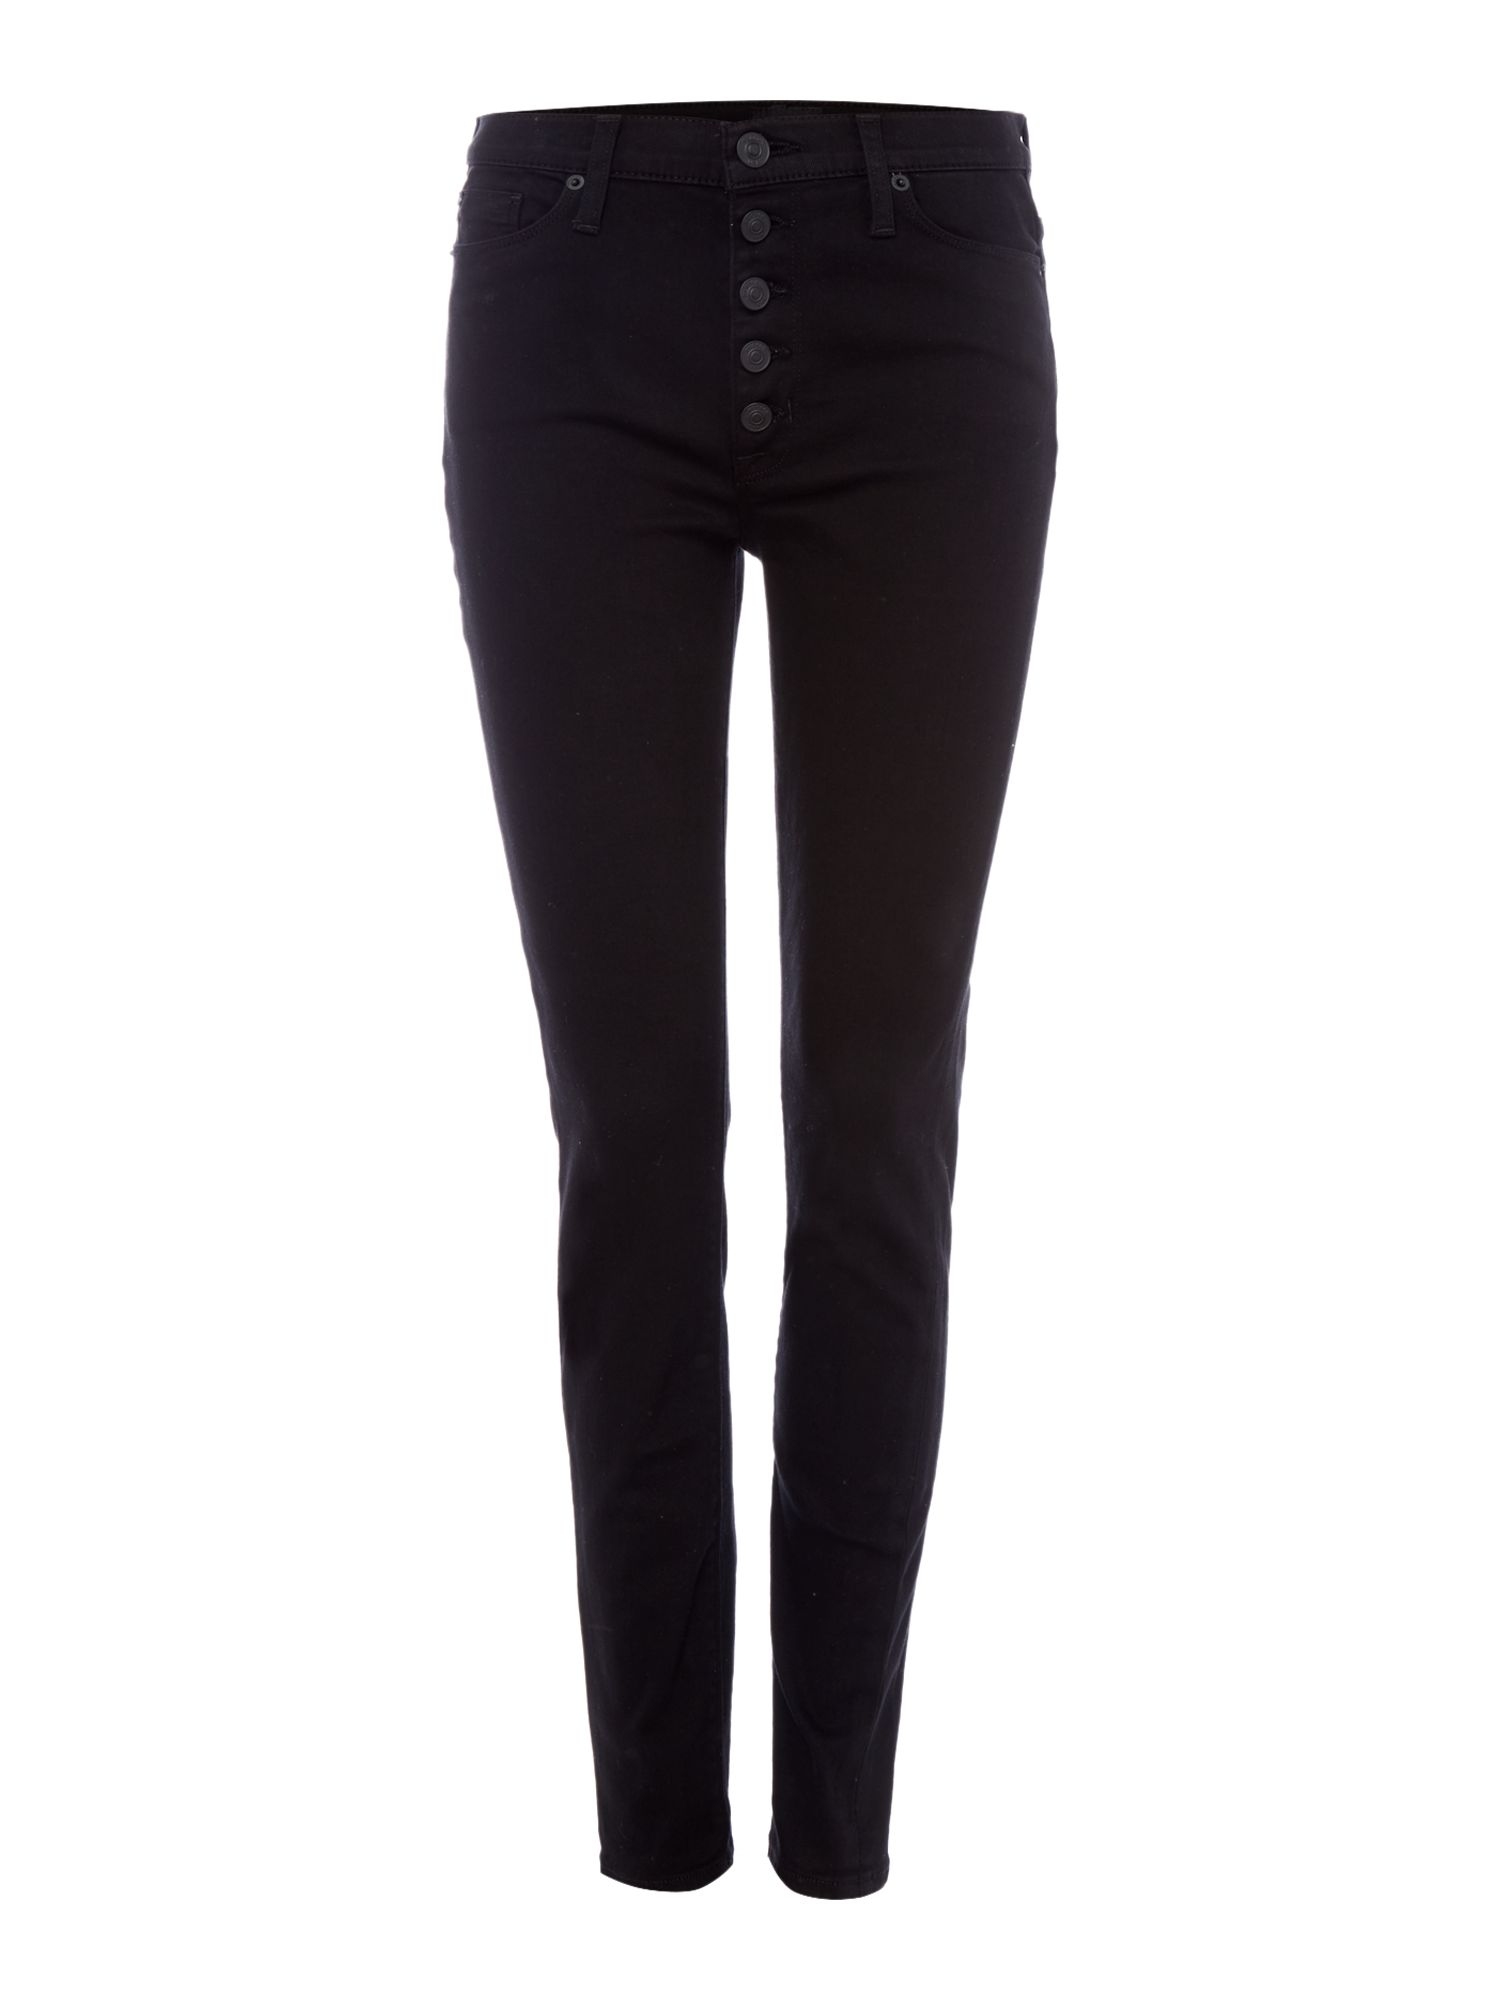 Hudson Jeans Ciara highrise exposed button jeans in black Black